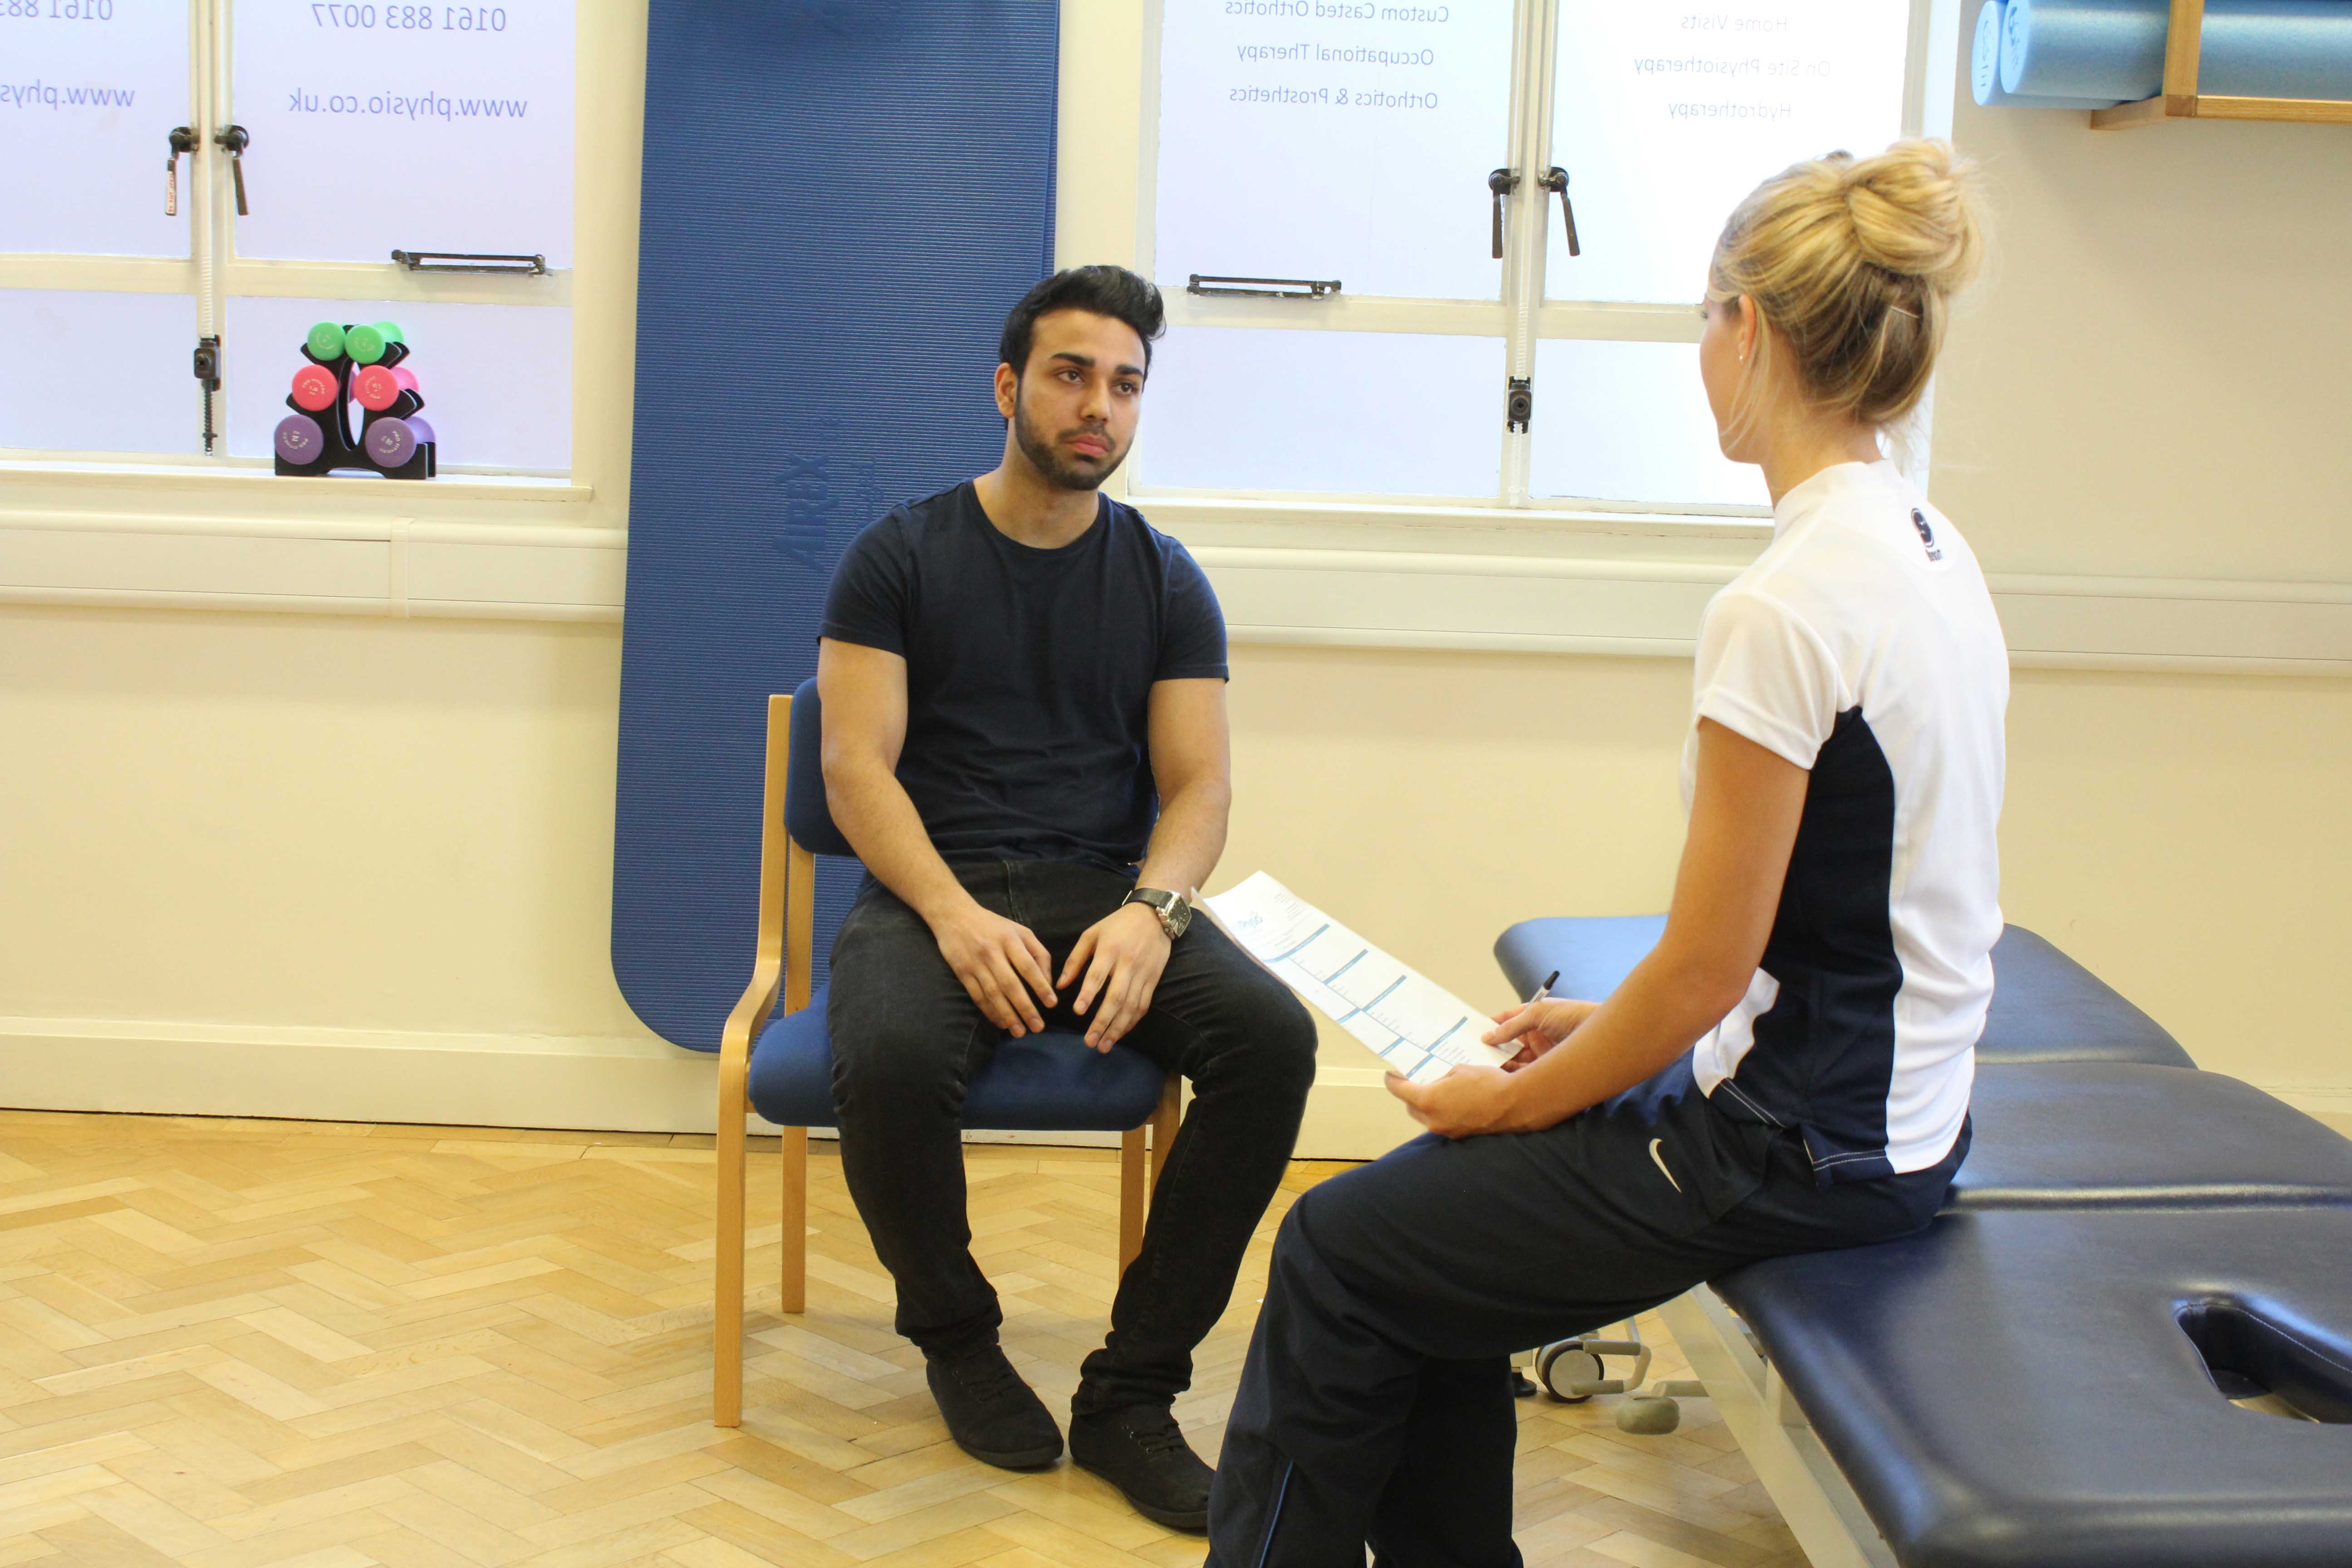 Our therpaist are friendly and caring towards your needs and want to ensure you get the best from your treatment.